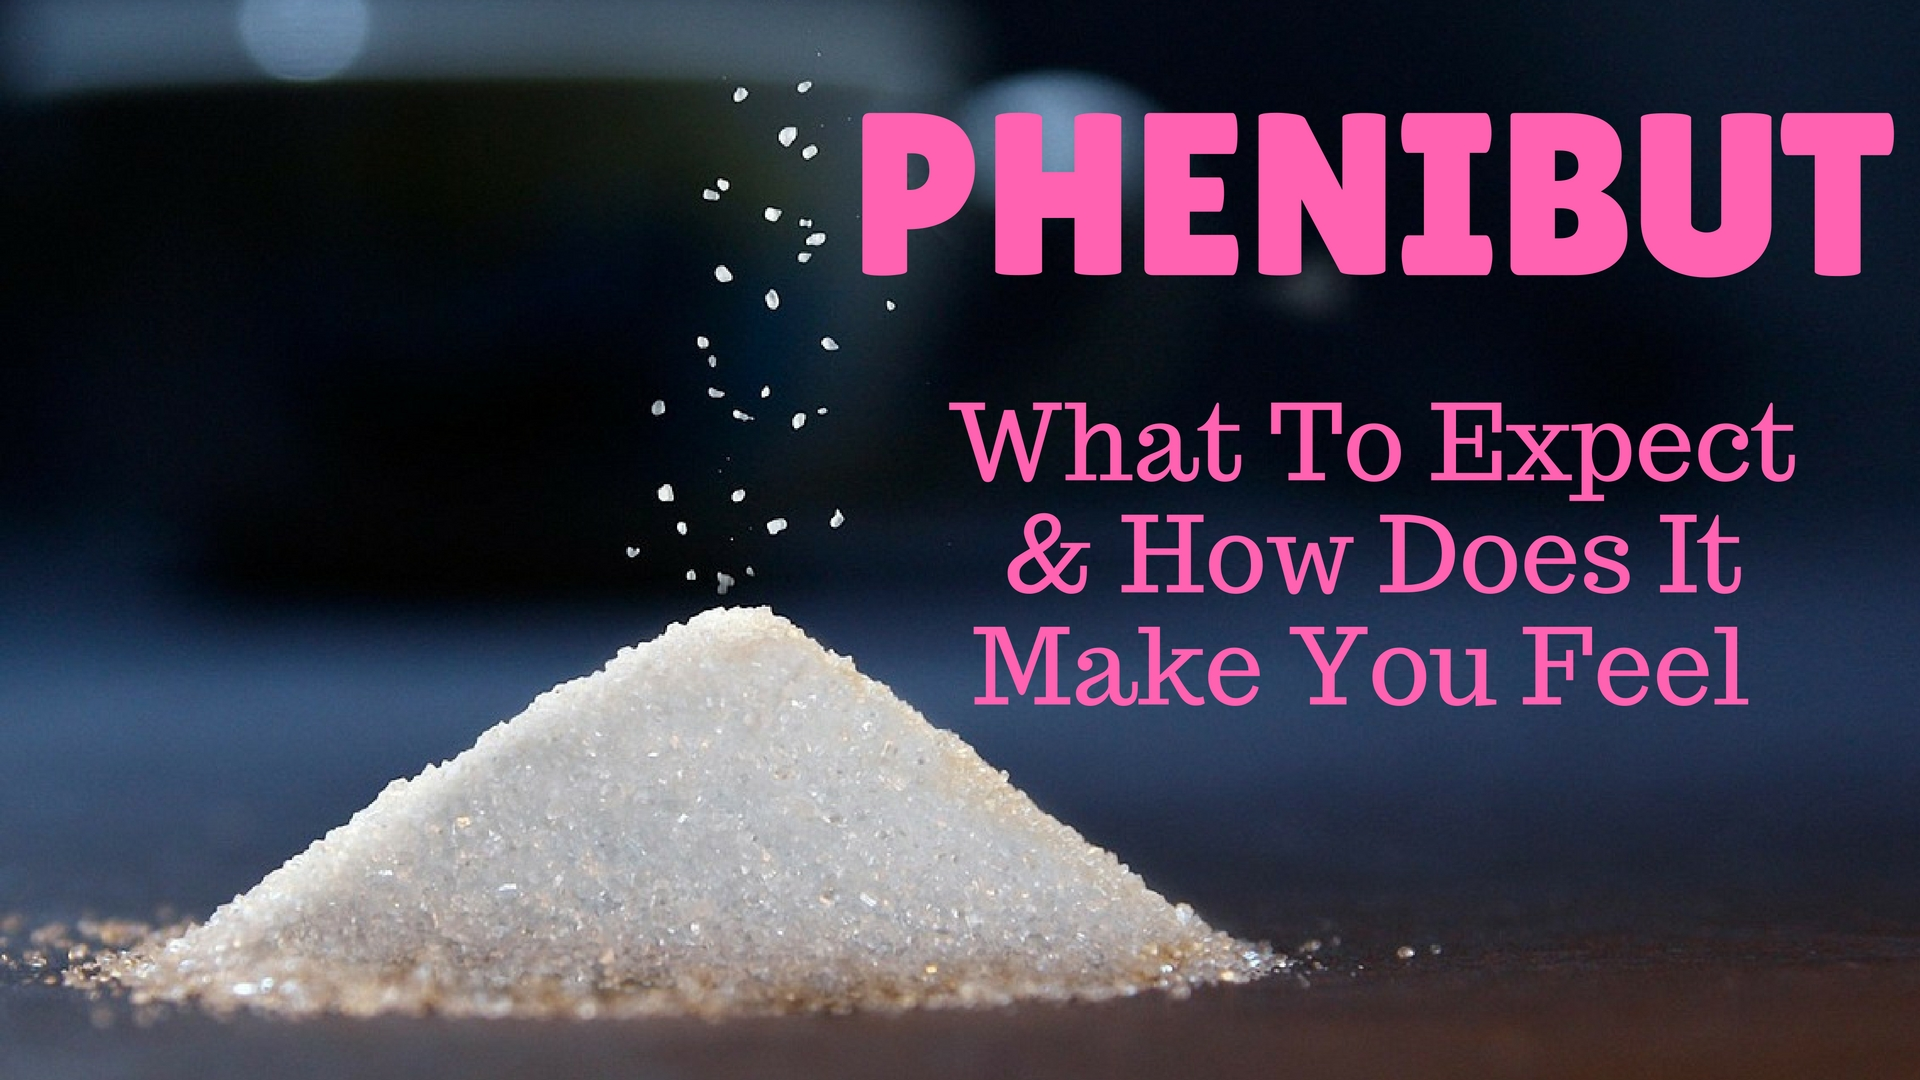 Phenibut Review - Benefits, What It Feels Like, Dosage And